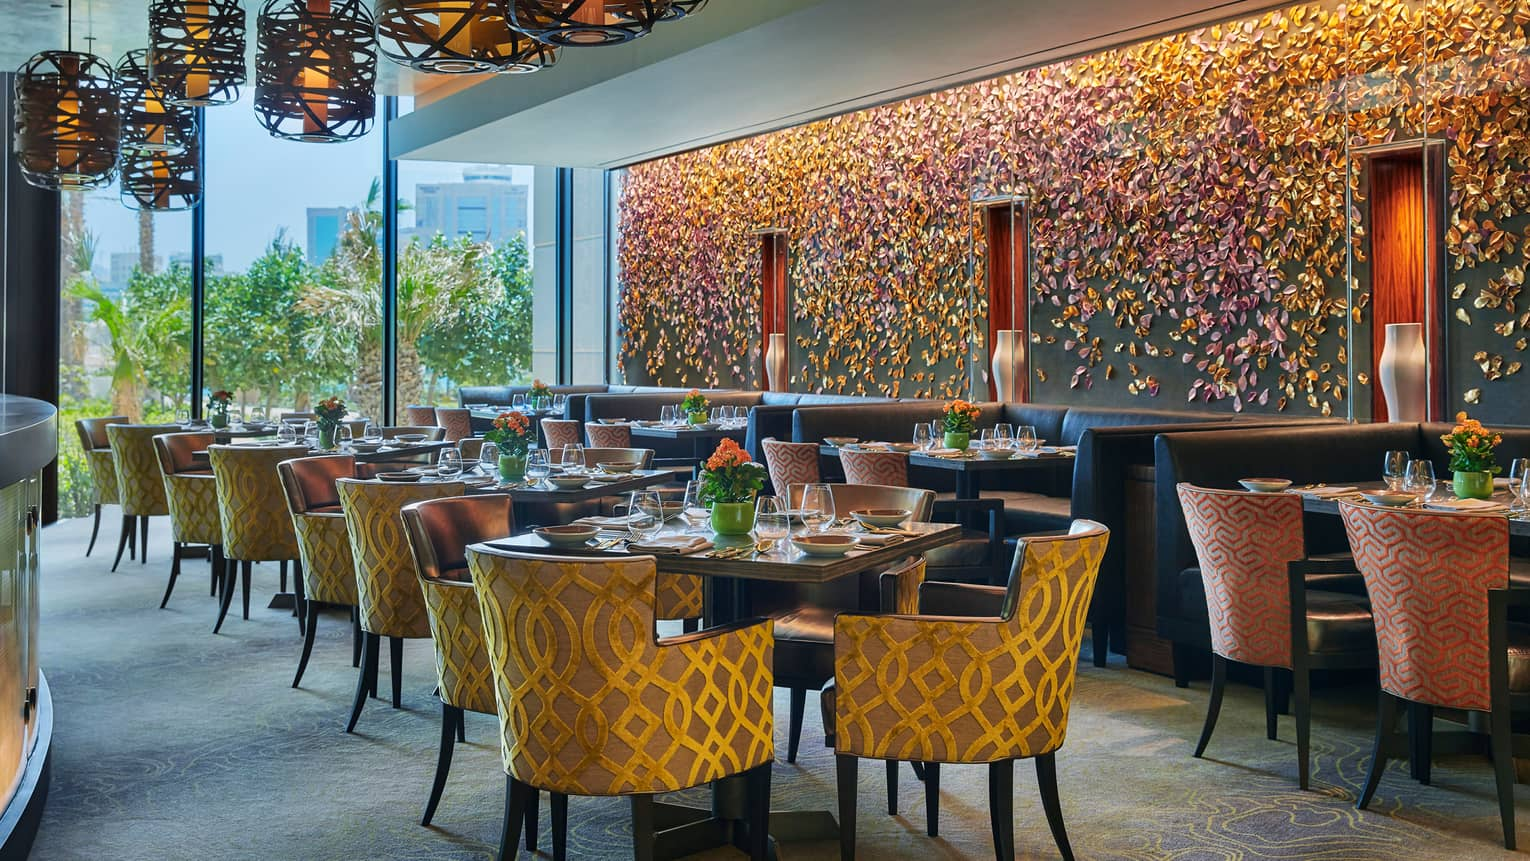 Bahrain Bay Kitchen elegant indoor dining room with chairs with gold details, formal dining tables, flower-petal mural